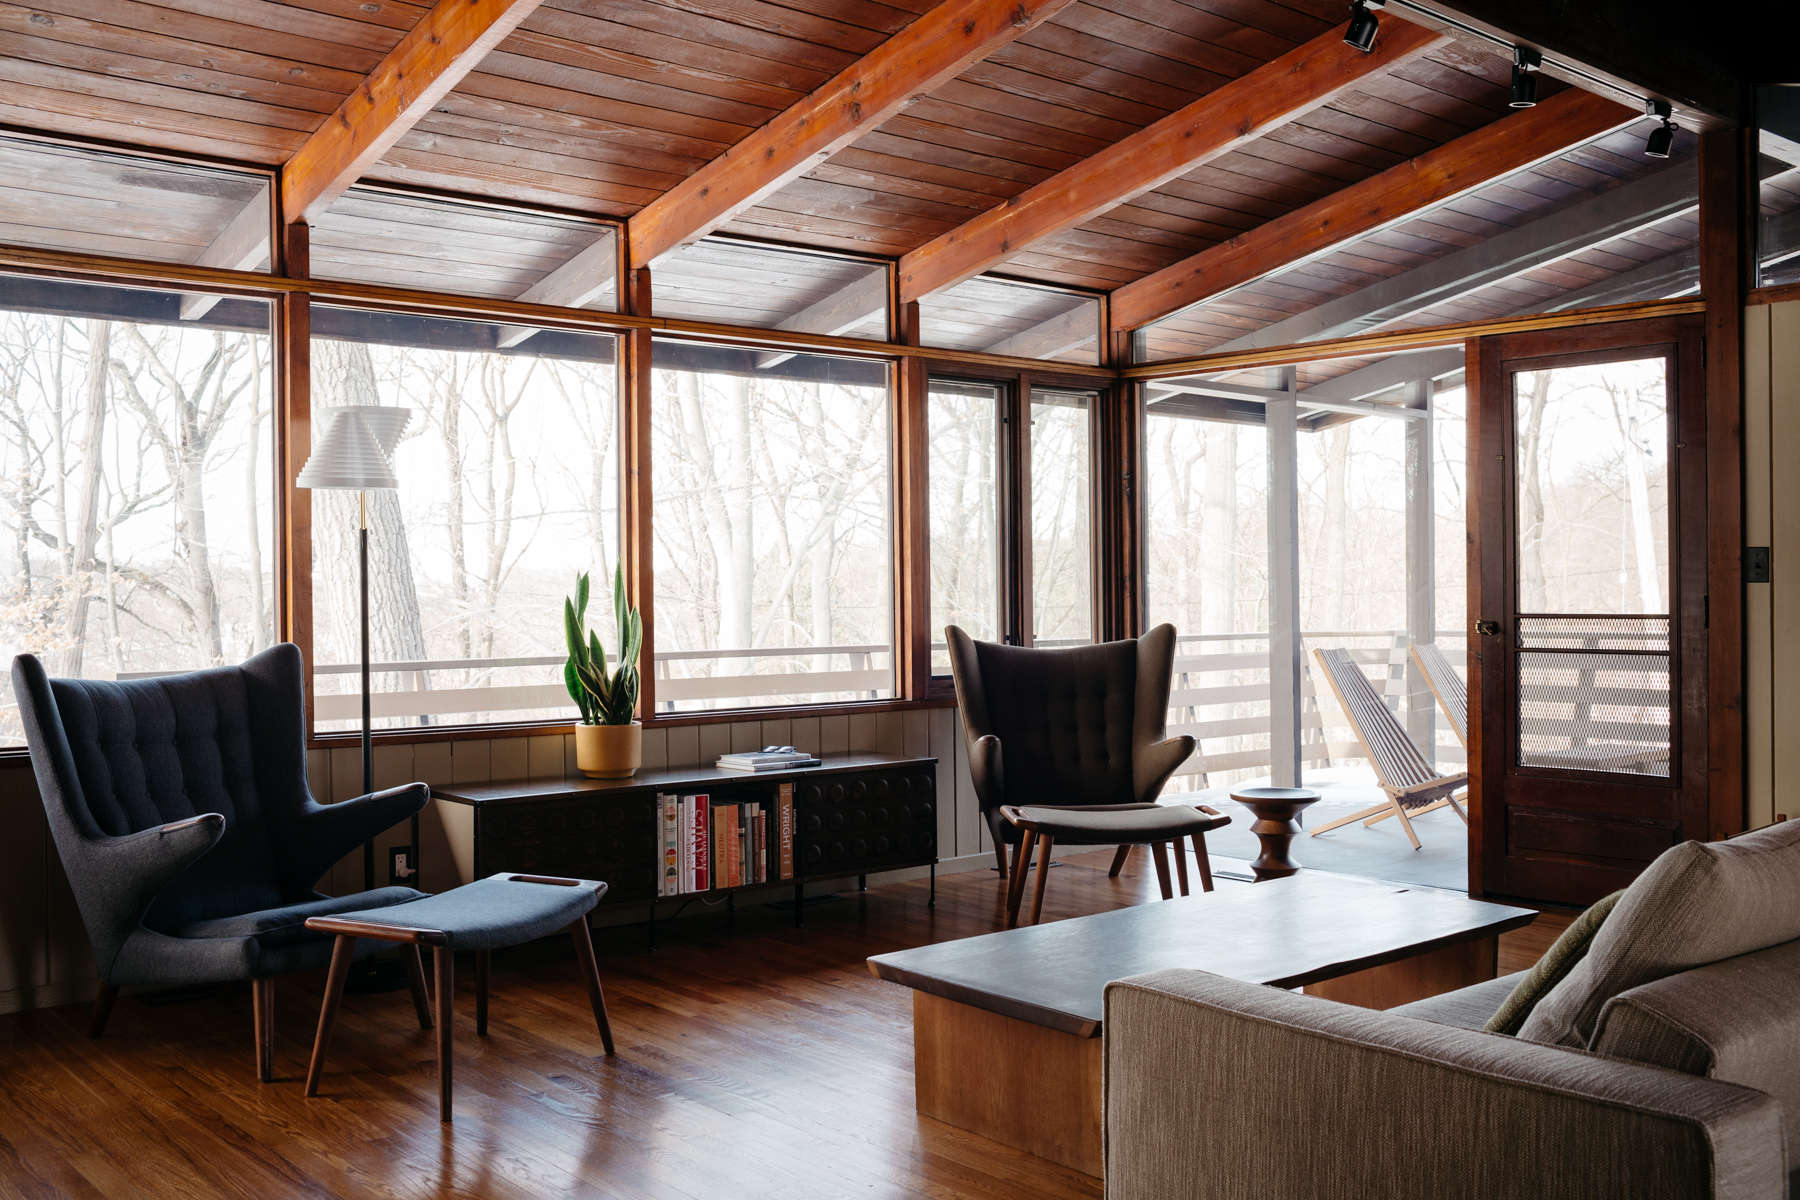 The living room at the Wood House, Carla and Niall Maher's midcentury ranch, an ongoing remodel/restoration project in Westchester, NY, photographed by Brian W. Ferry for Remodelista